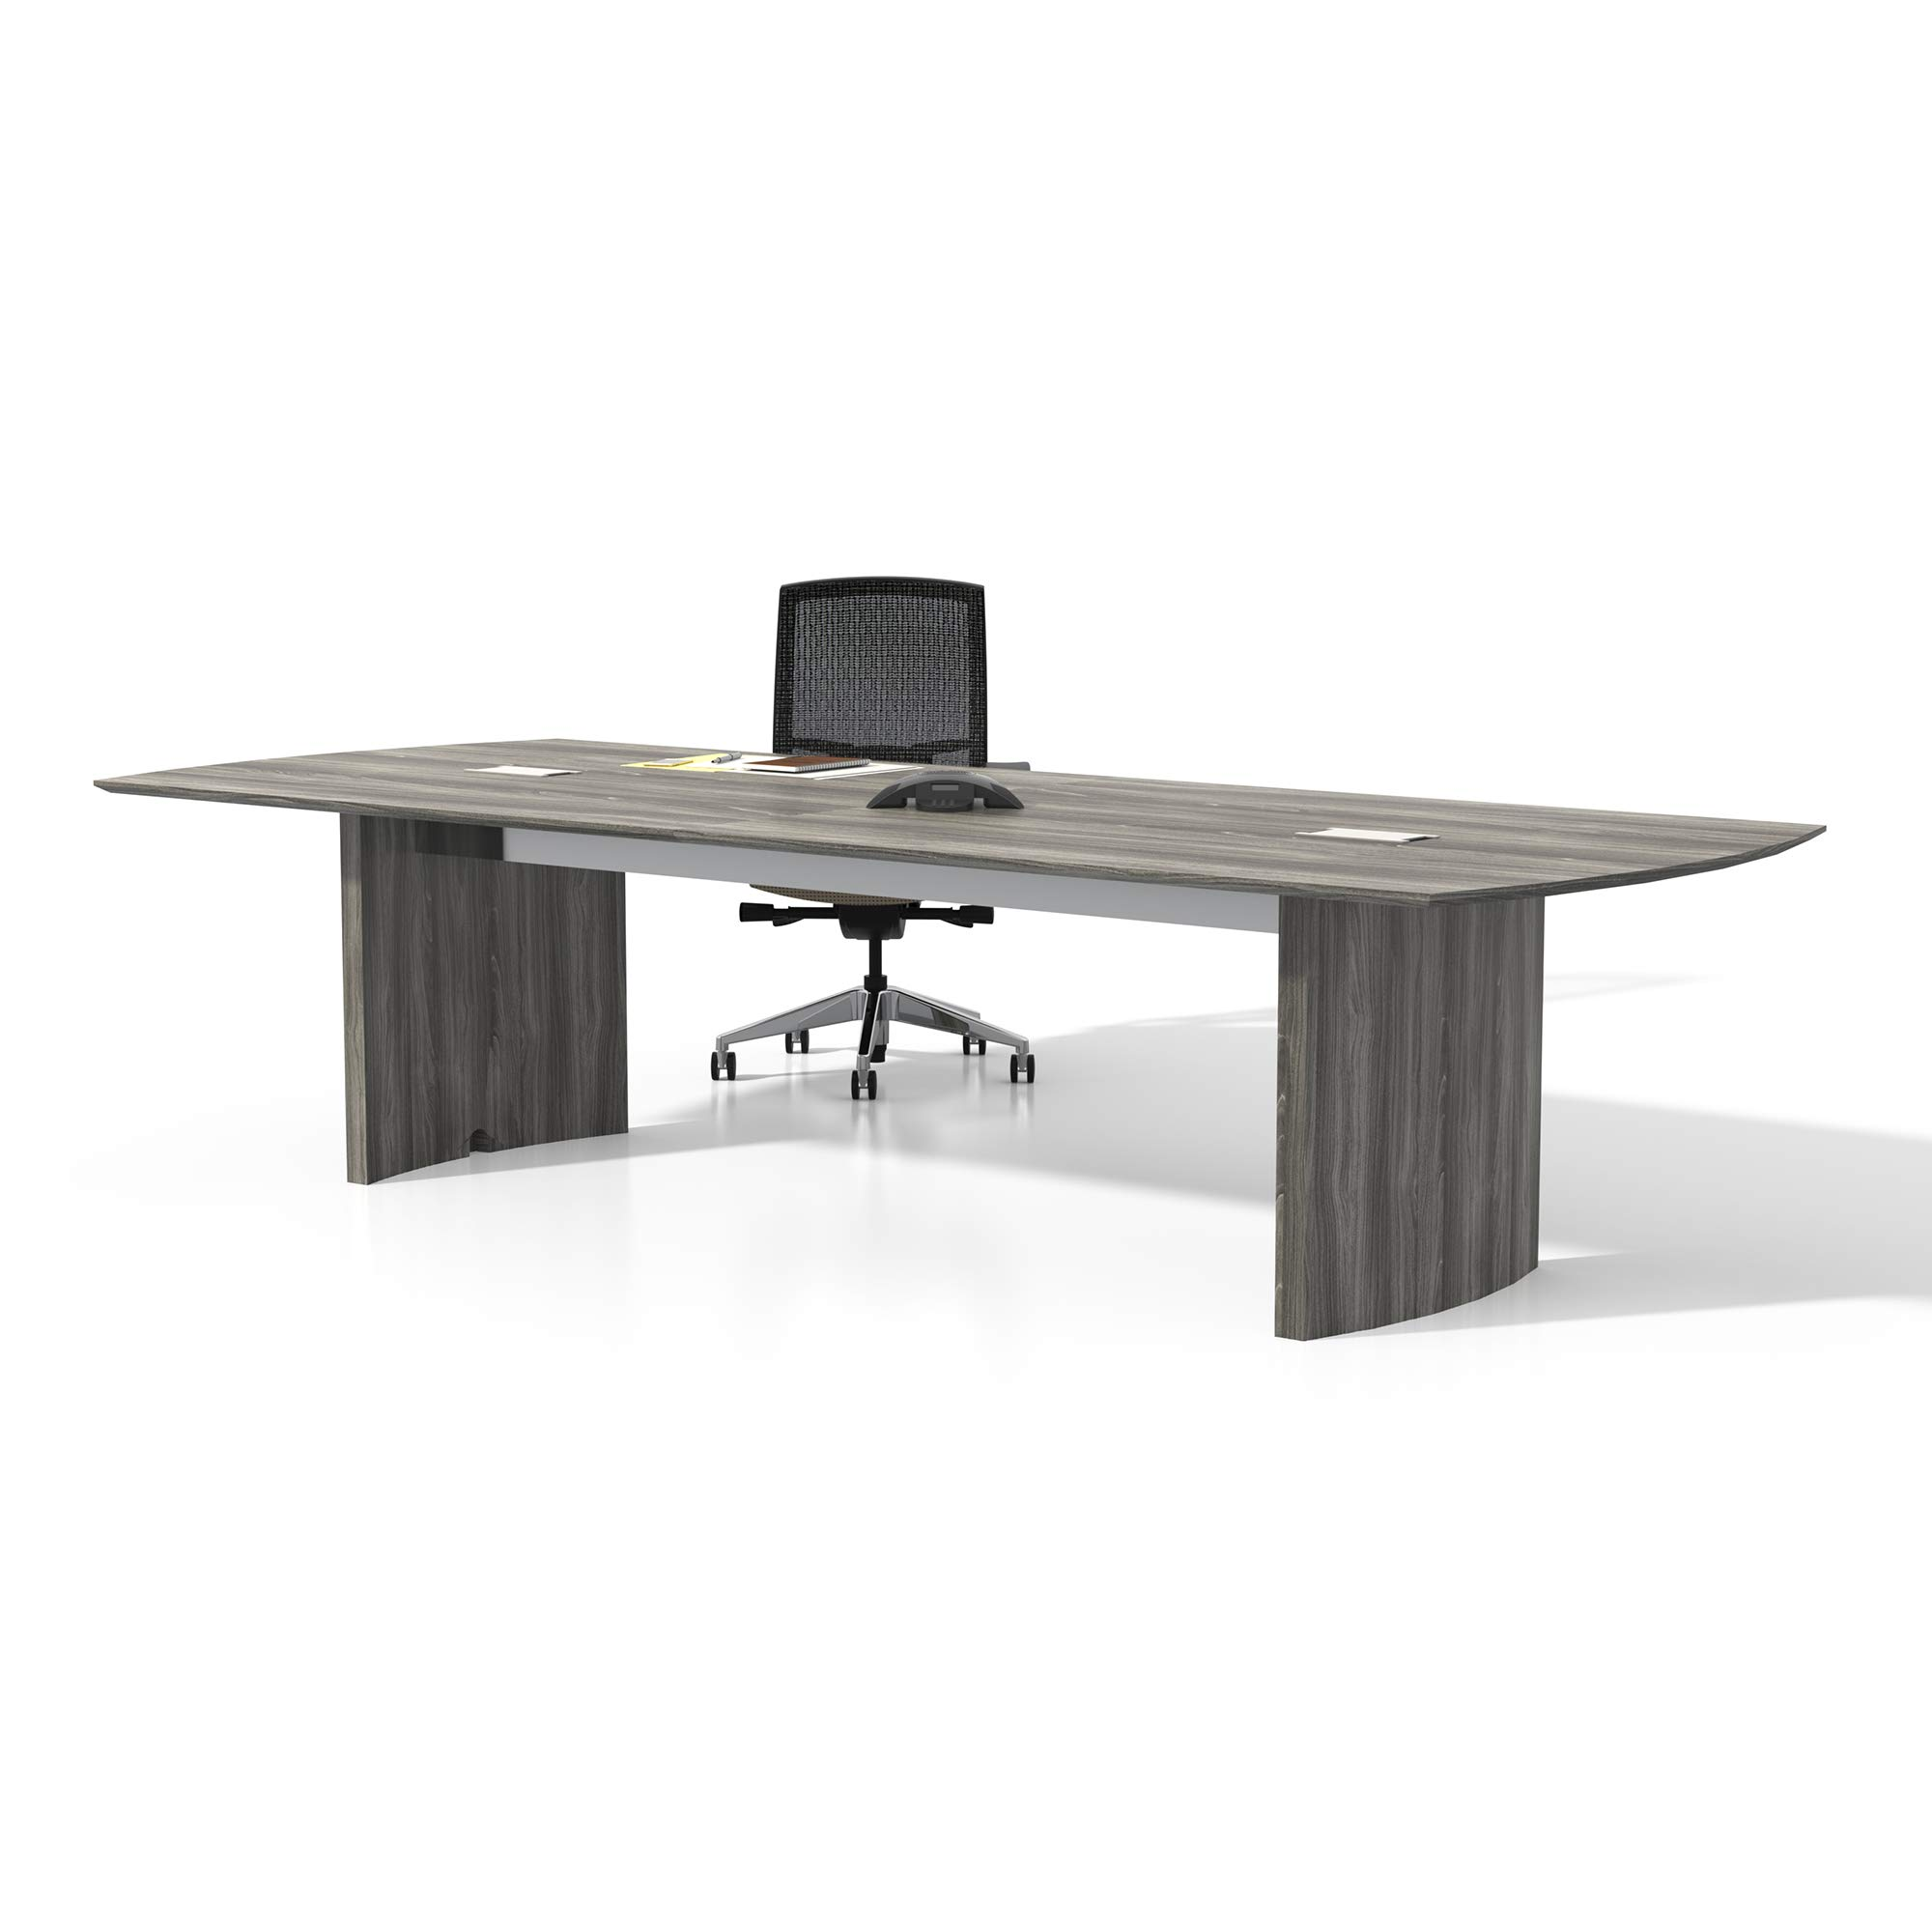 Safco Products MNC10LGS Medina Table 10' Gray Steel by Safco Products (Image #3)